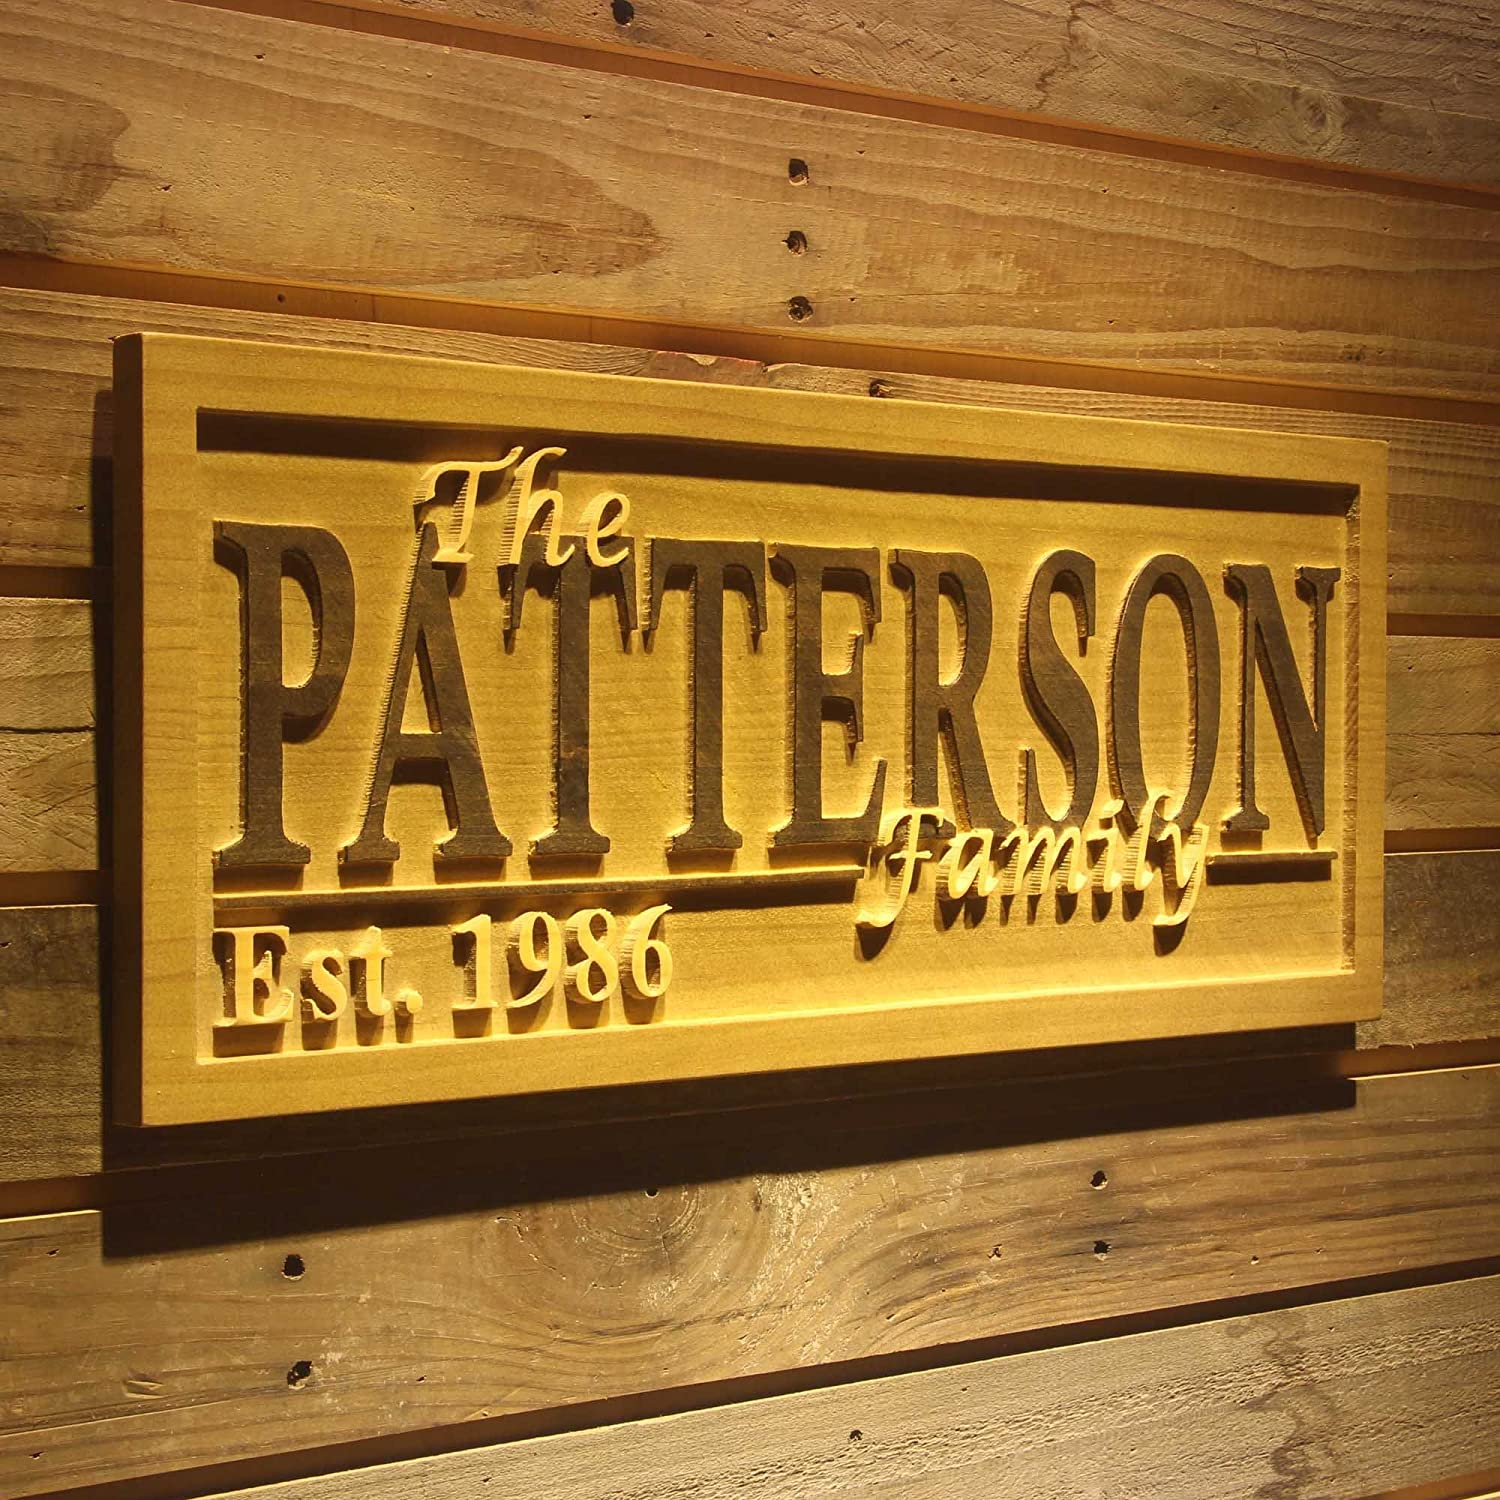 Wpa0037 Name Personalized Last Name First Name Established Date Home Décor Wedding Gift Wooden Sign - Standard 23  x 9.25